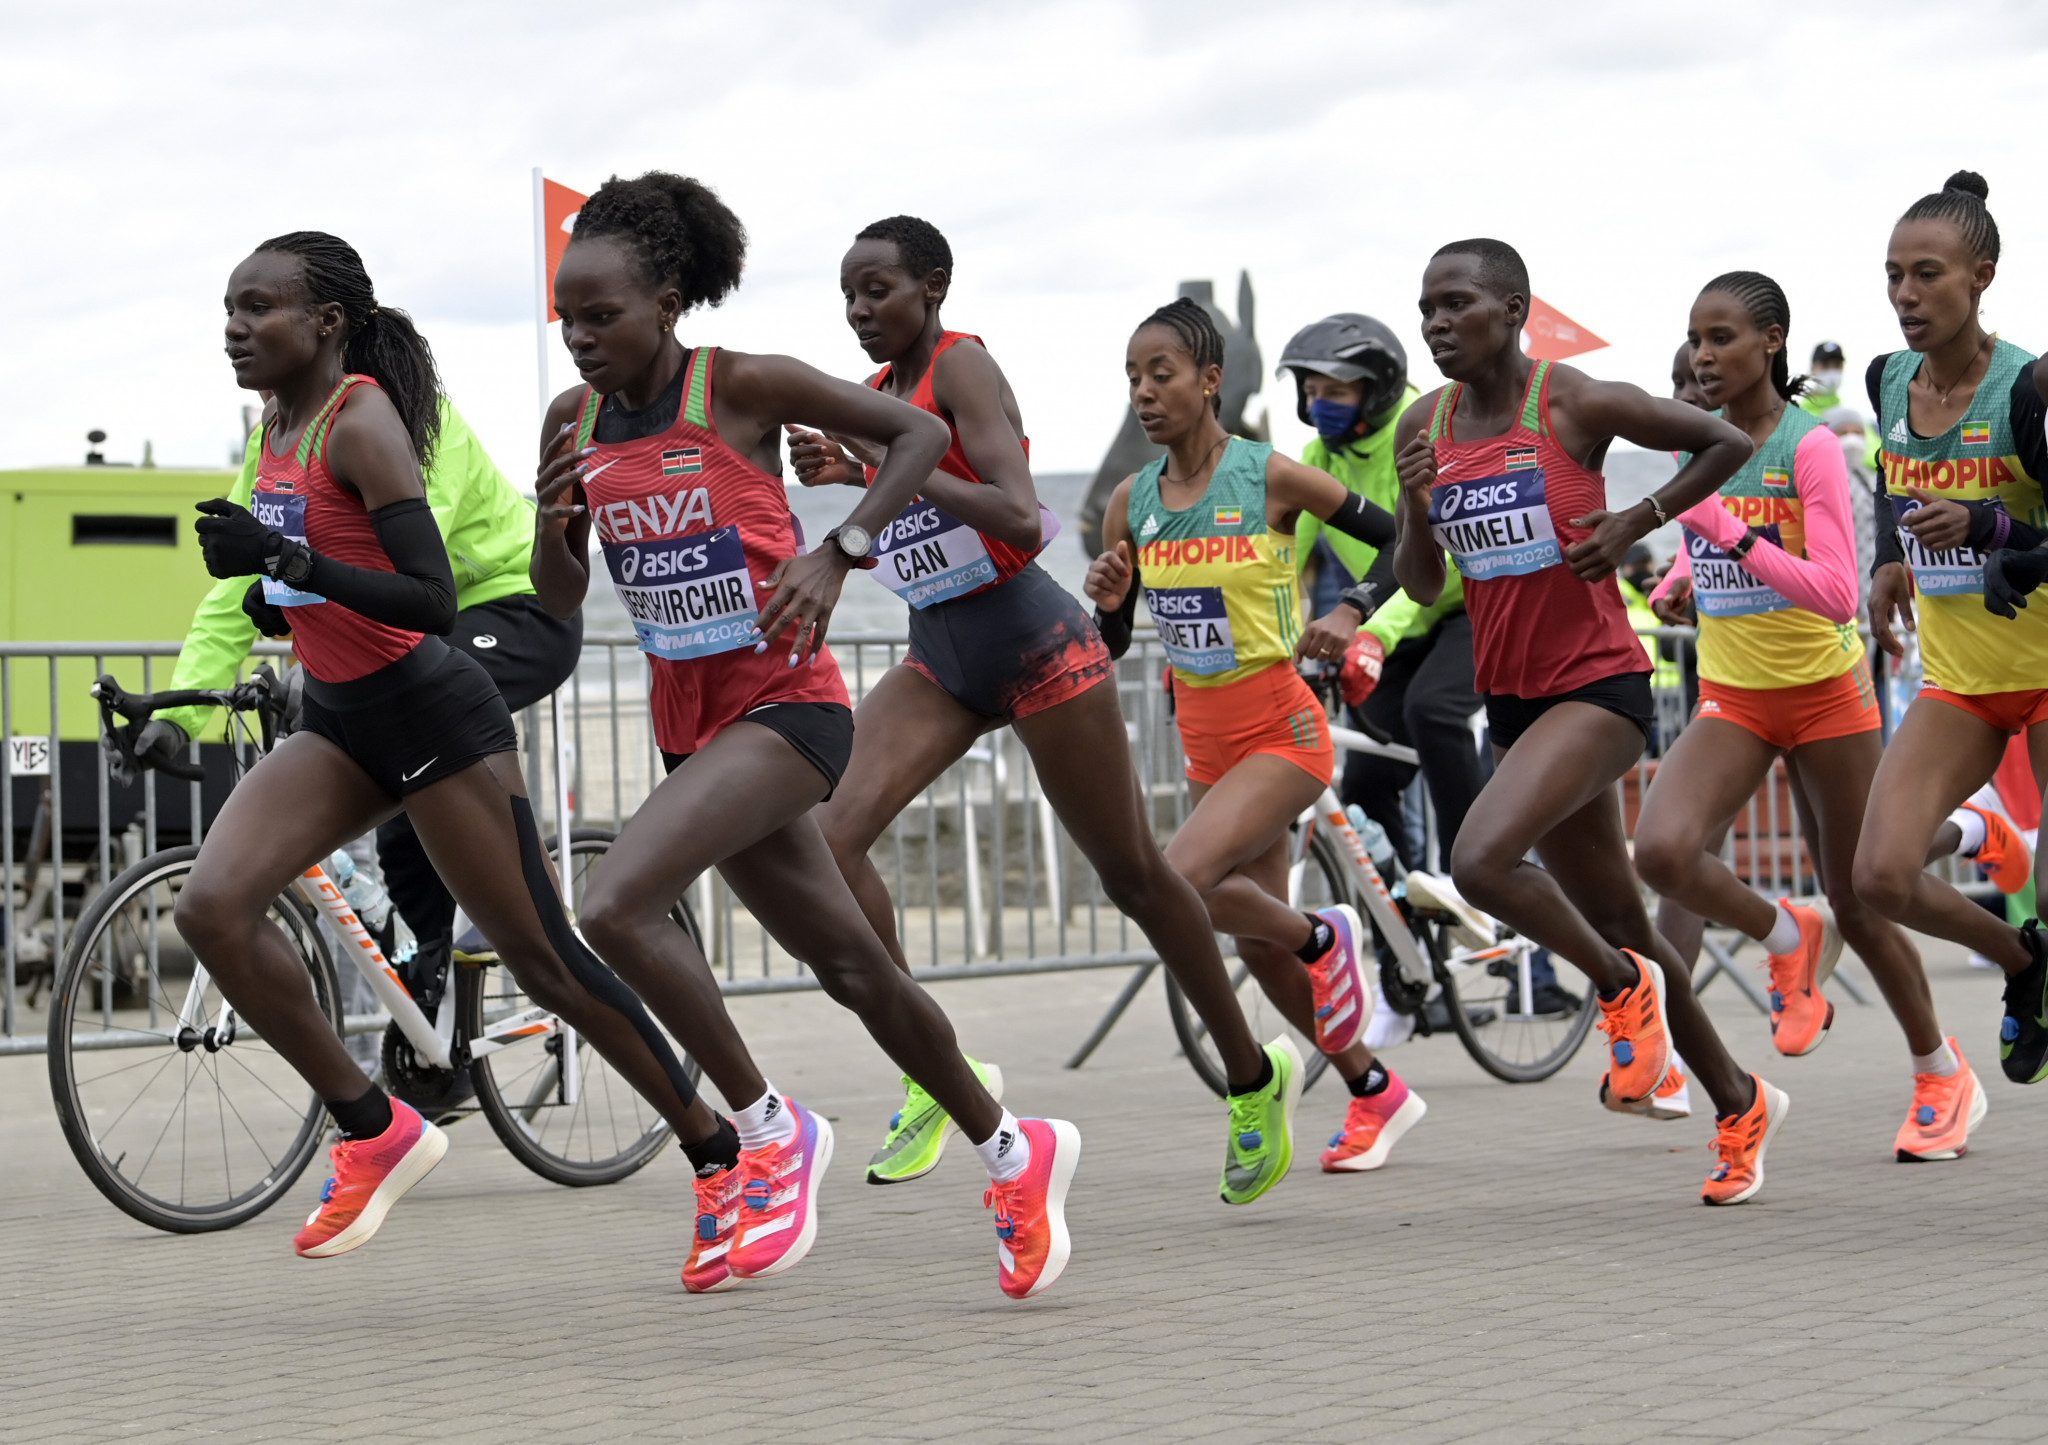 Falls punctuated a dramatic women's race ©World Athletics